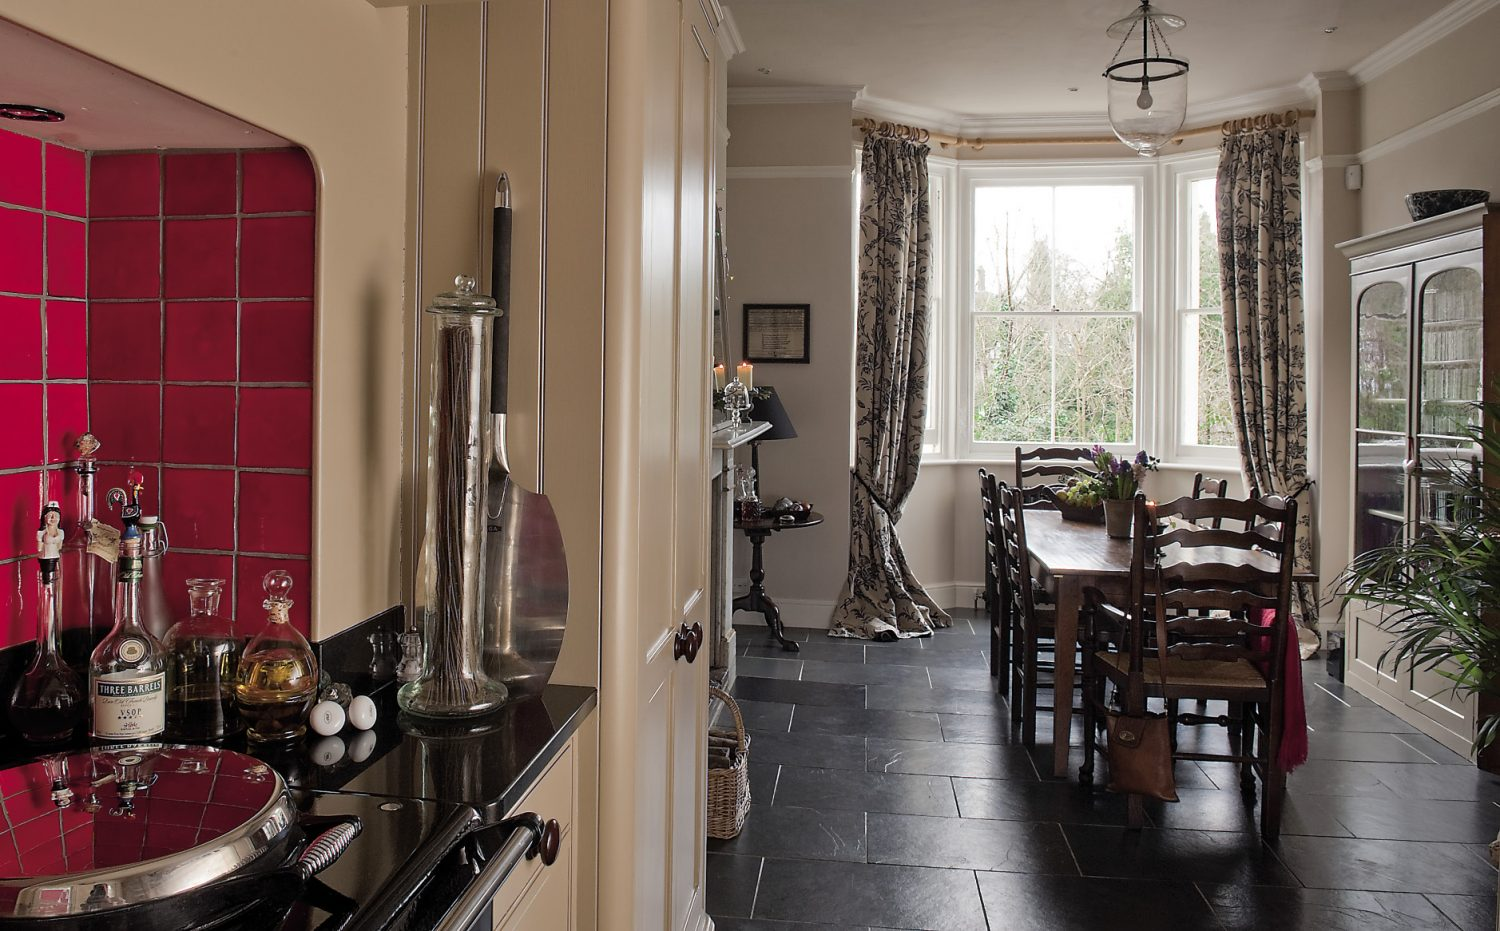 """Brad and Sally removed the wall that previosuly separated the kitchen and dining room: """"I think the space works really well,"""" says Sally. """"It's lovely to be able to cook and chat to our guests at the same time."""""""